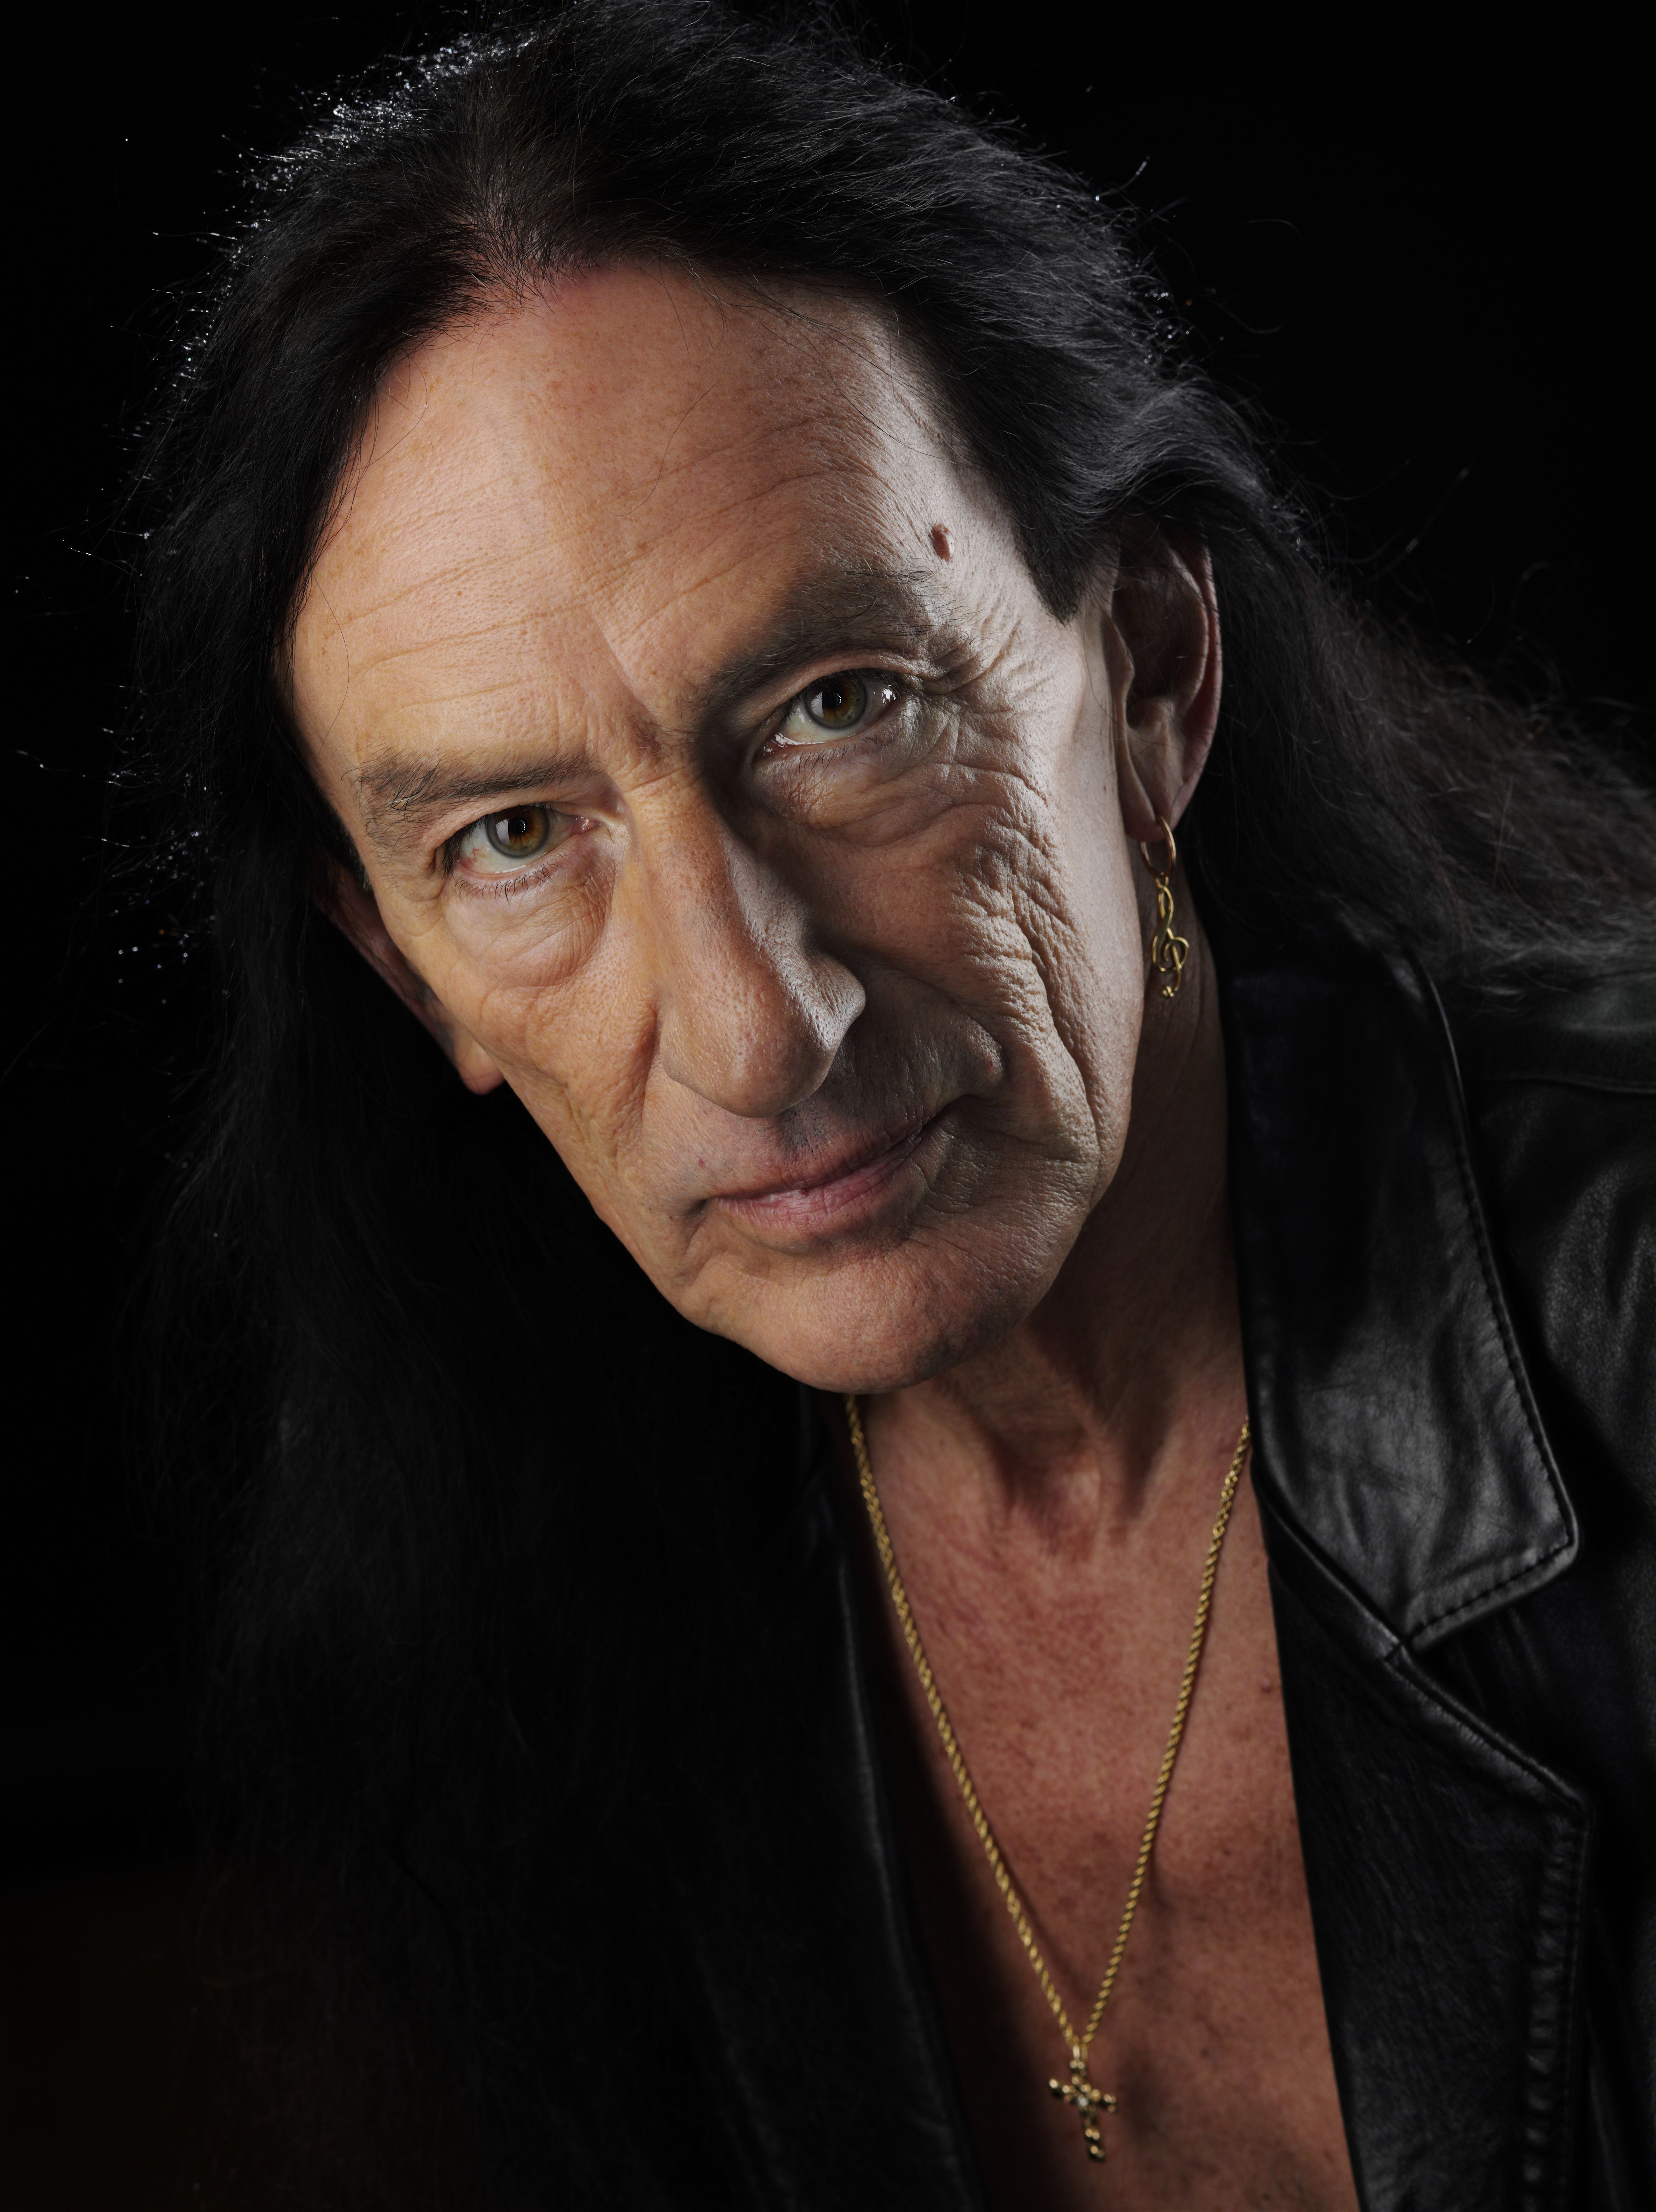 Ken Hensley's Book of Answers